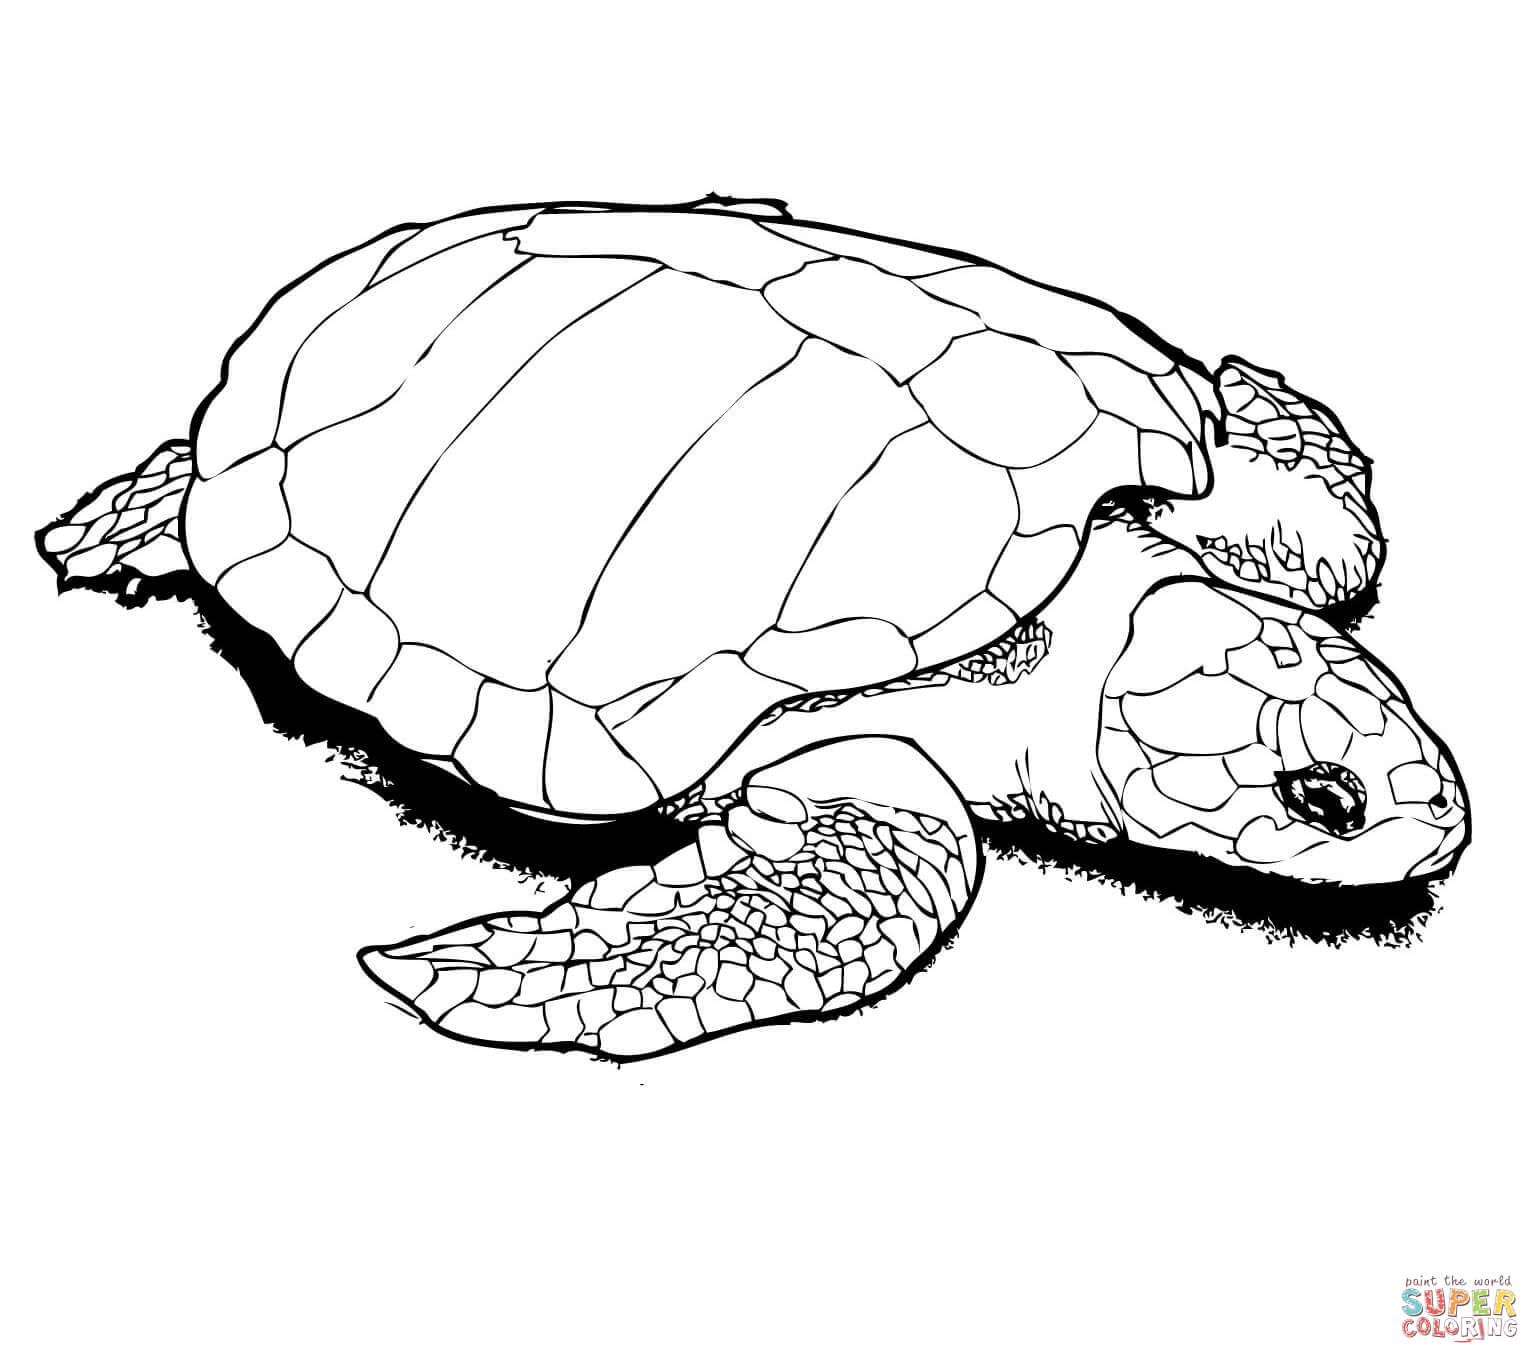 lego ninja turtles coloring pages old colonial house colouring